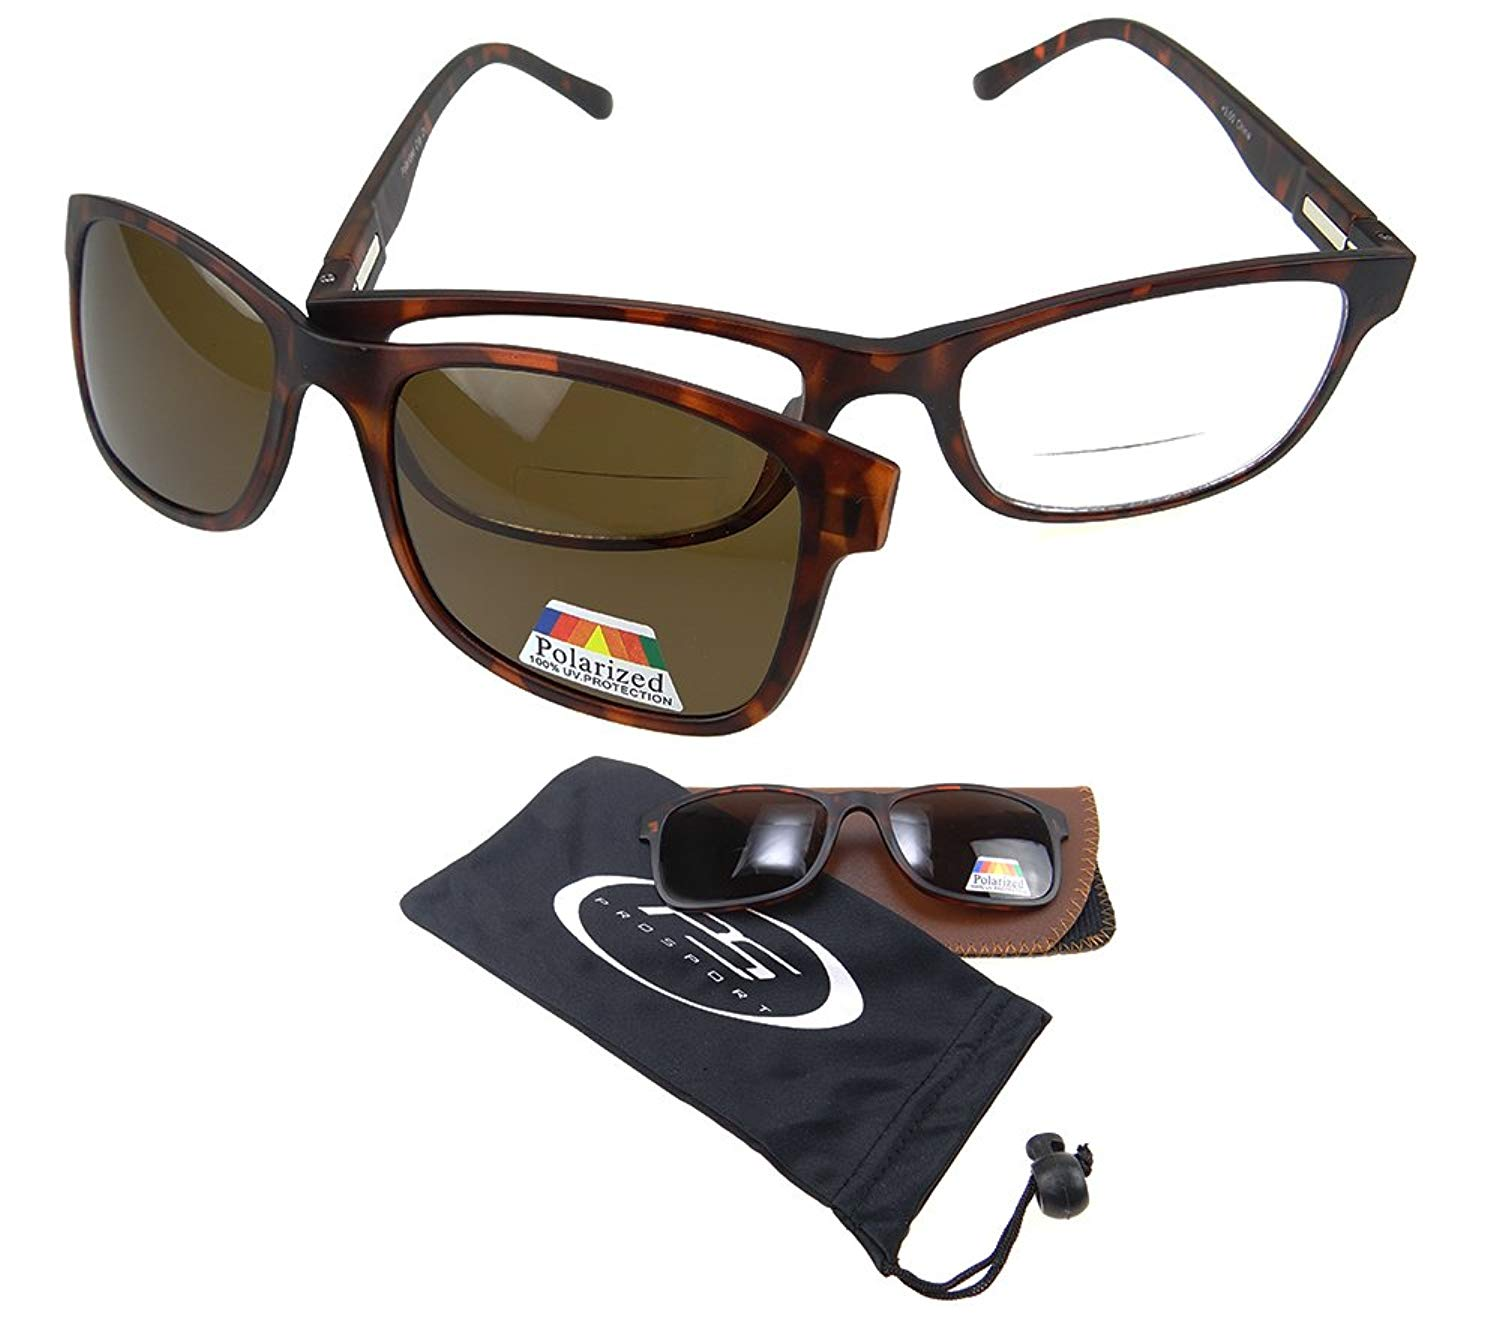 bf1c2c809718 Get Quotations · Polarized Bifocal Readers. Bifocal Glasses & Easy Magnetic  Polarized Clip-On